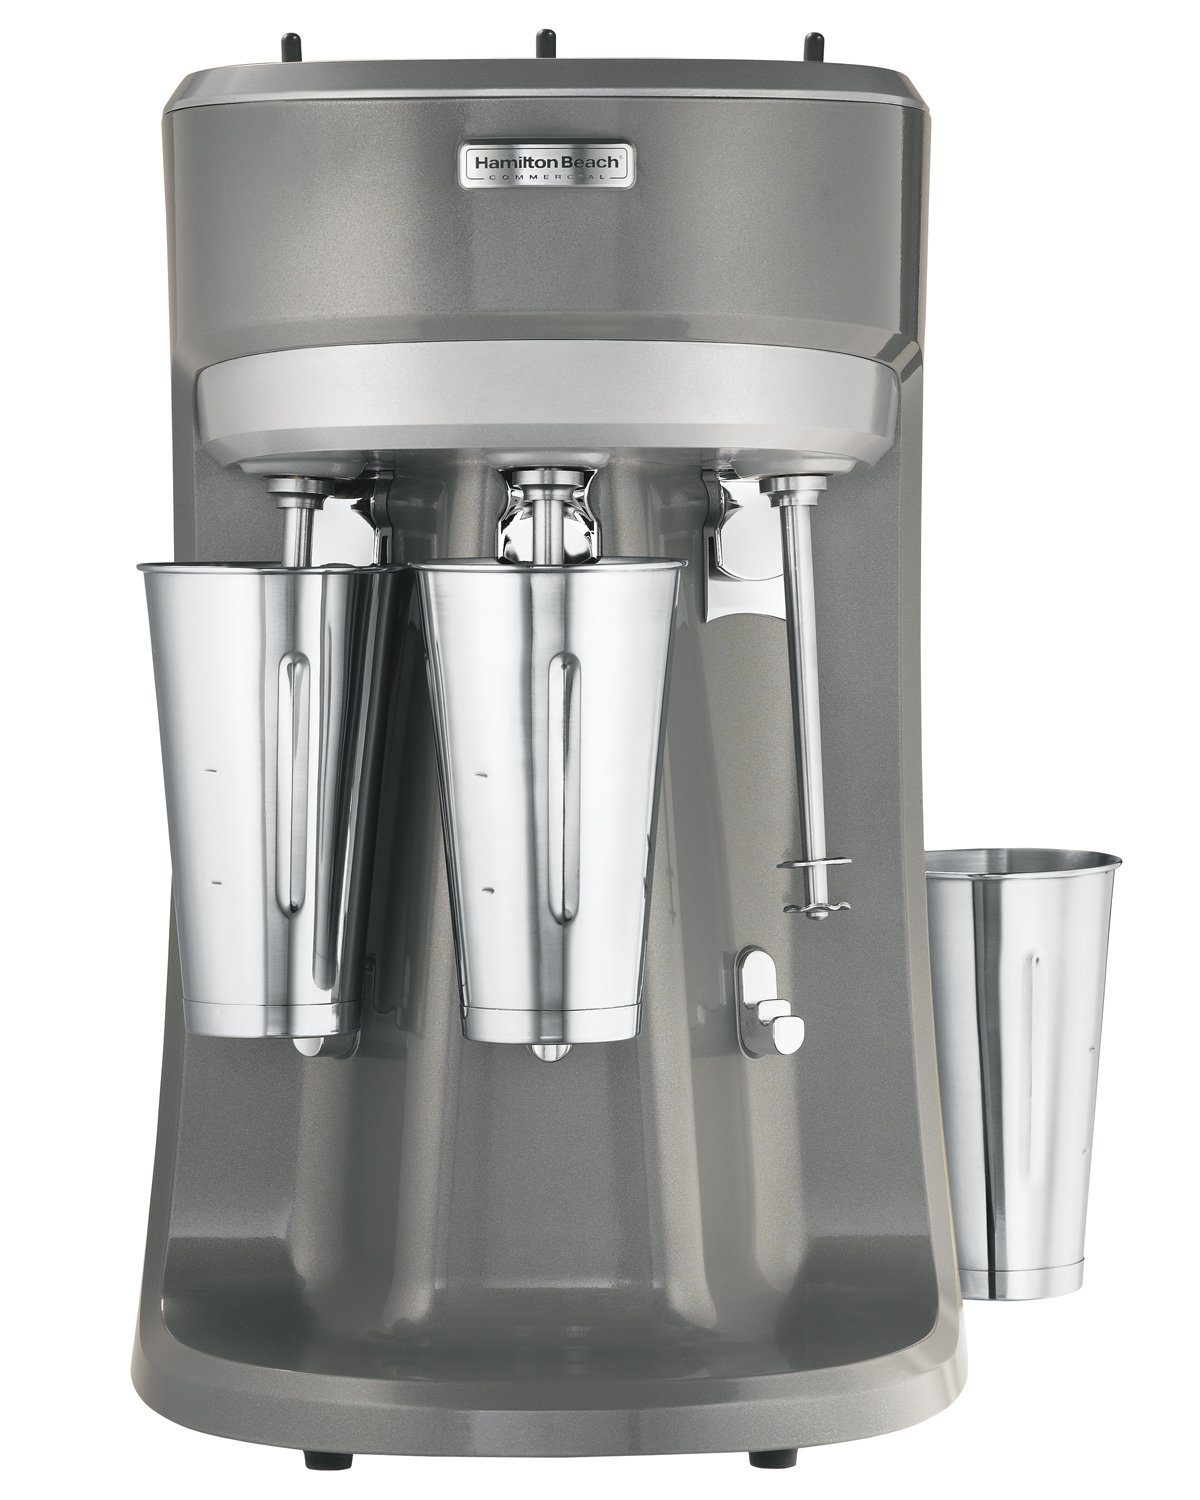 Hamilton Beach HMD400 120V Triple Spindle Commercial Drink Mixer by Hamilton Beach (Image #1)